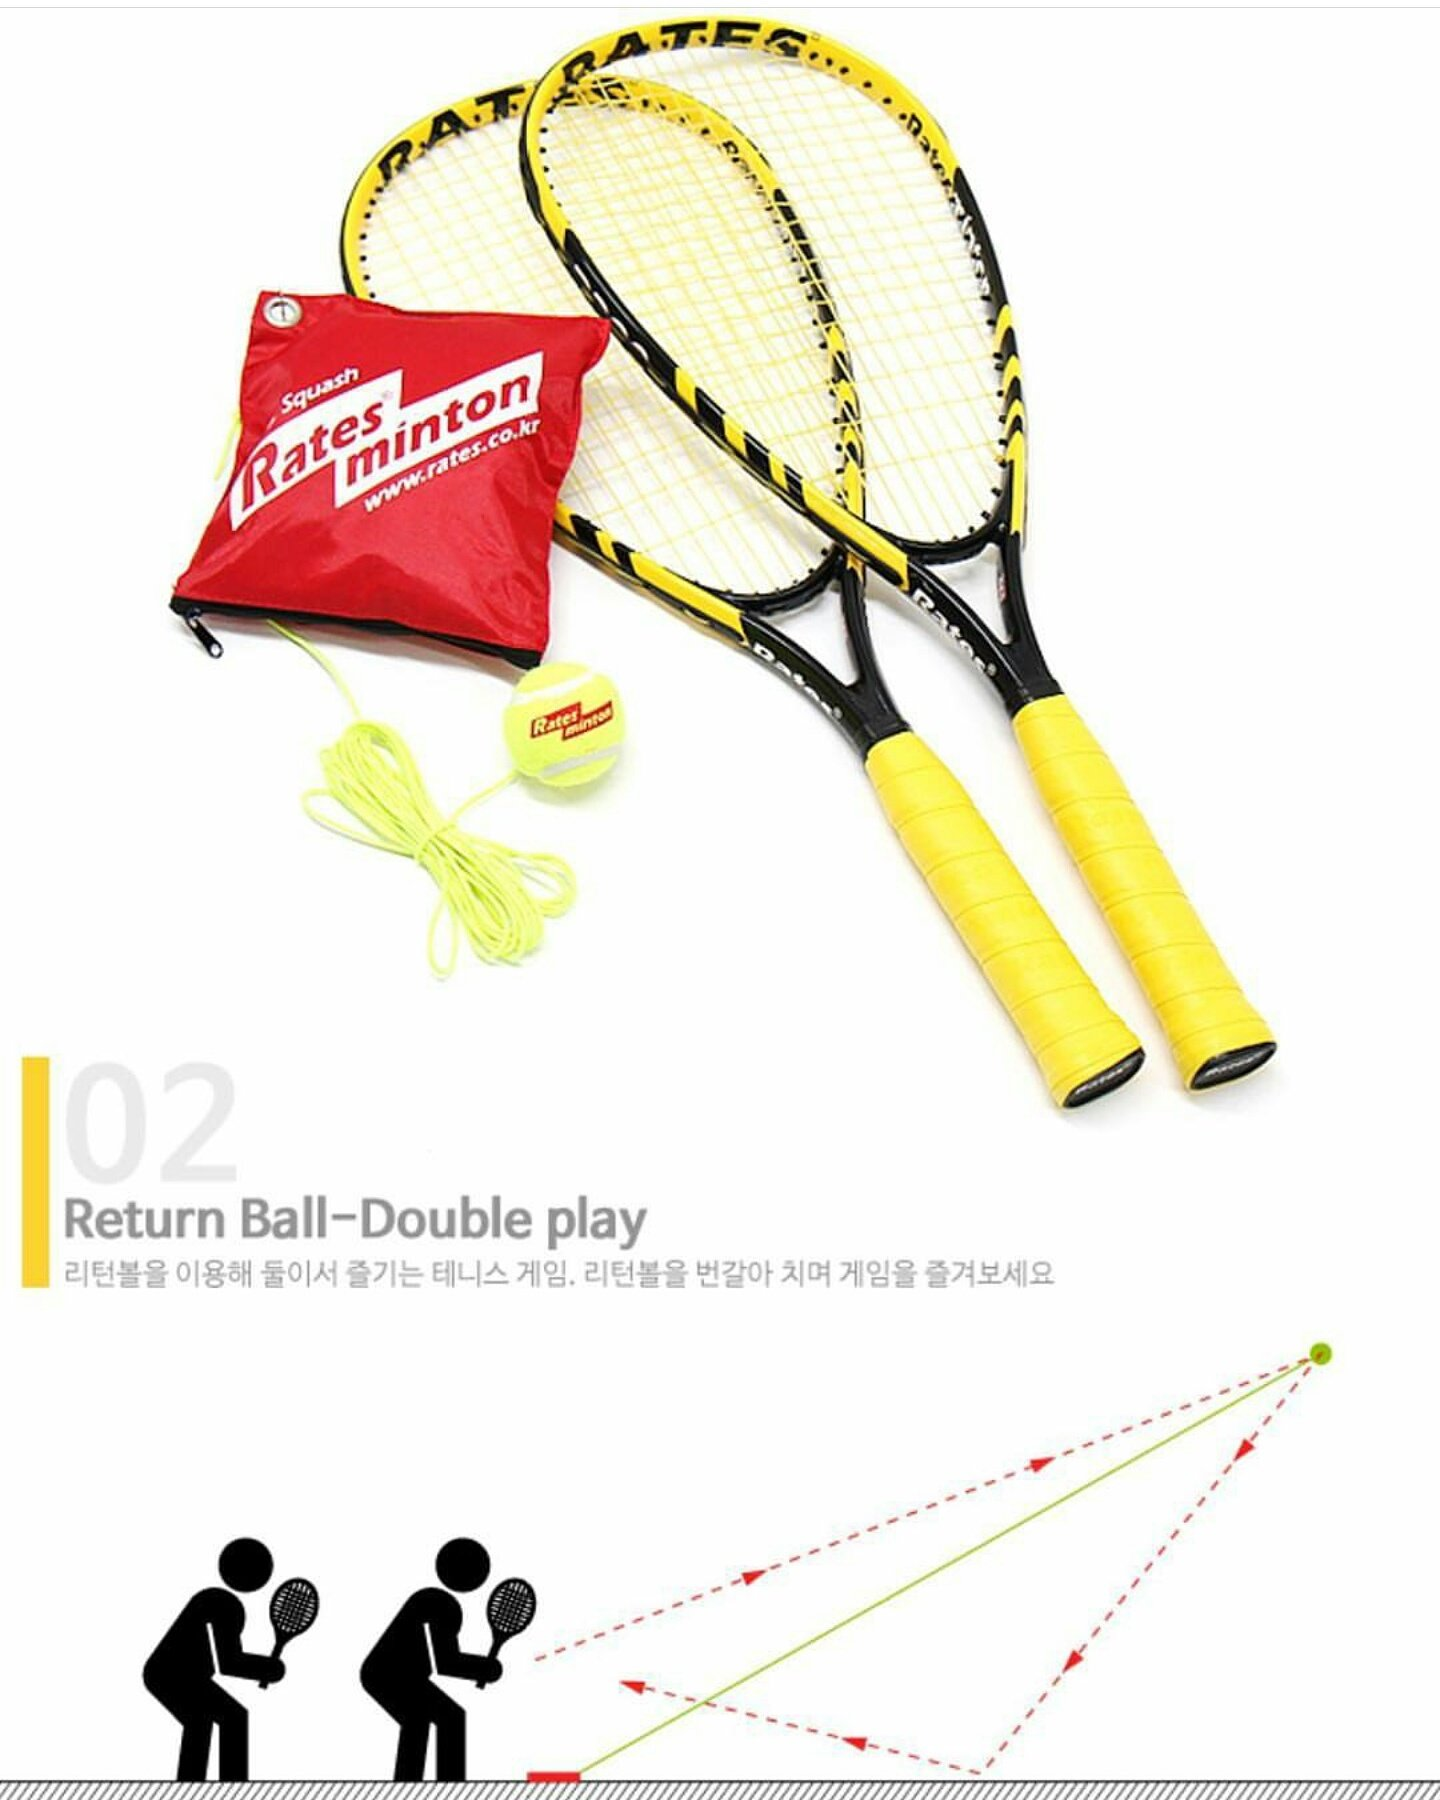 DNDmall Ratesminton Squash Starter Set ( Sports Outdoor RACQUETBALL TENNIS SQUASH BADMINTON This Equipment allows you to Exercise alone or with your Friend Sports Training Equipment) by DNDmall (Image #6)